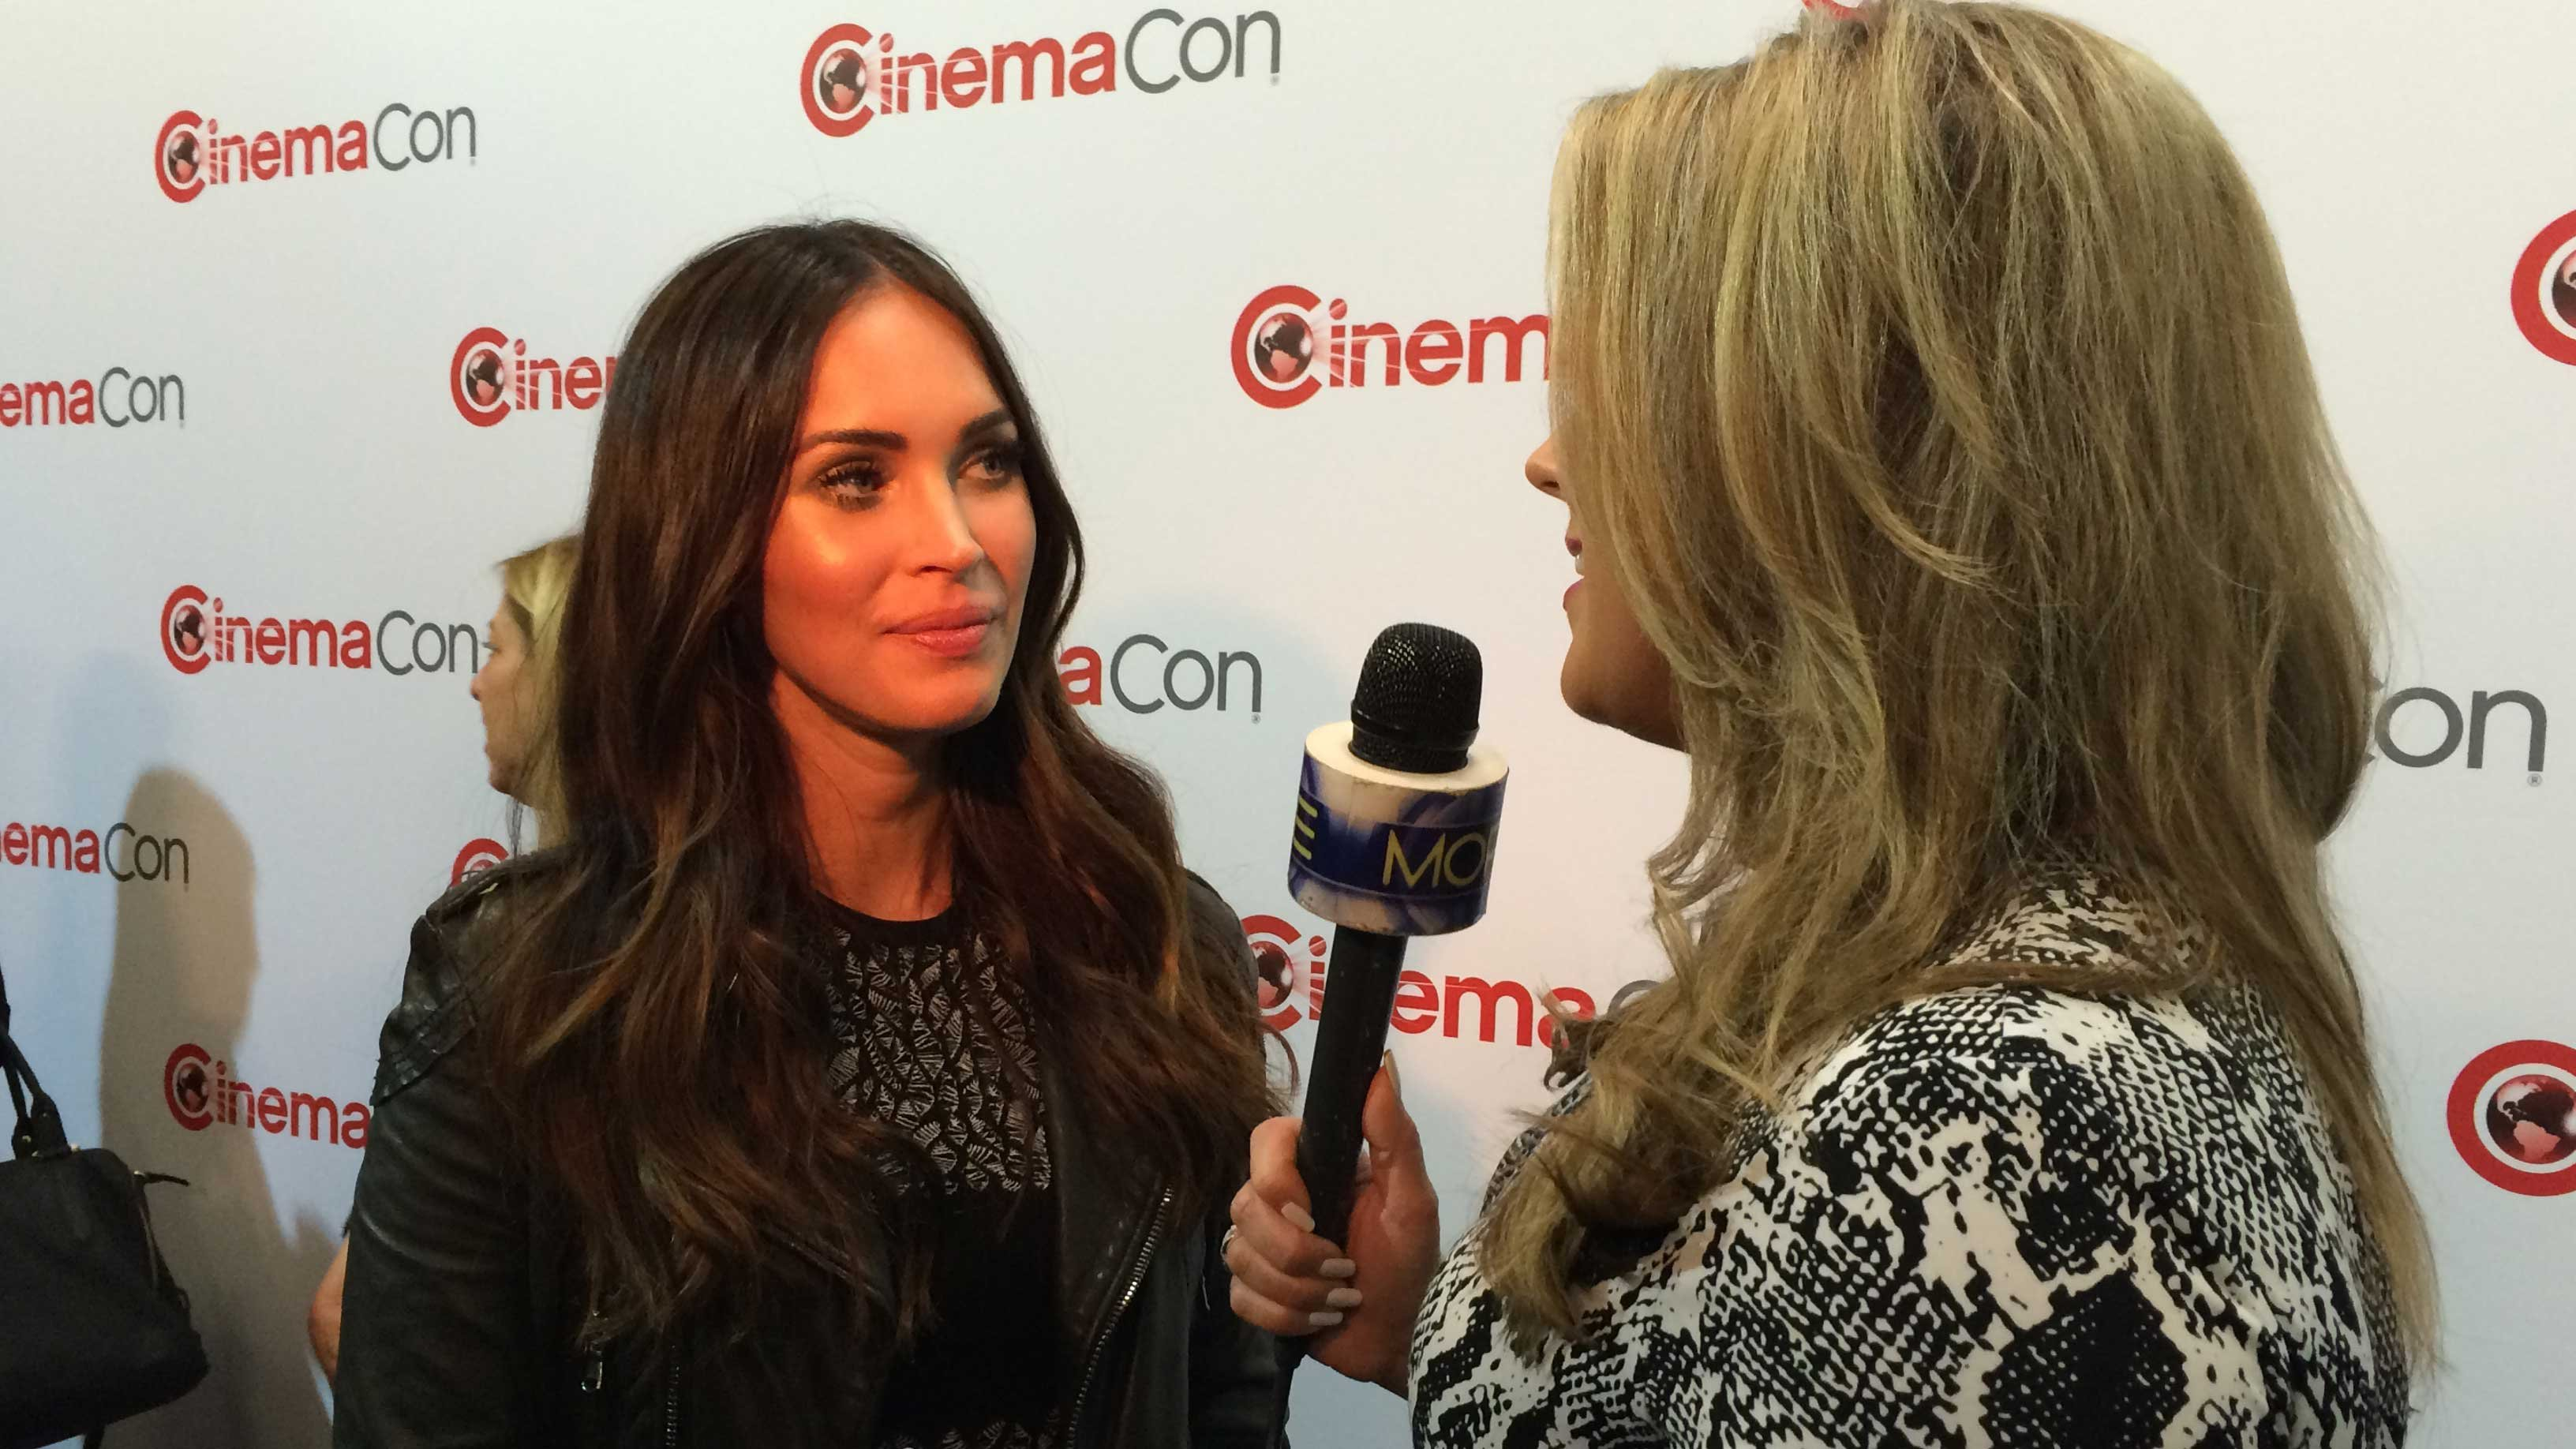 Megan Fox at CinemaCon at Caesars Palace on April 11, 2016. Photo taken by Jon Archuleta/MORE FOX5